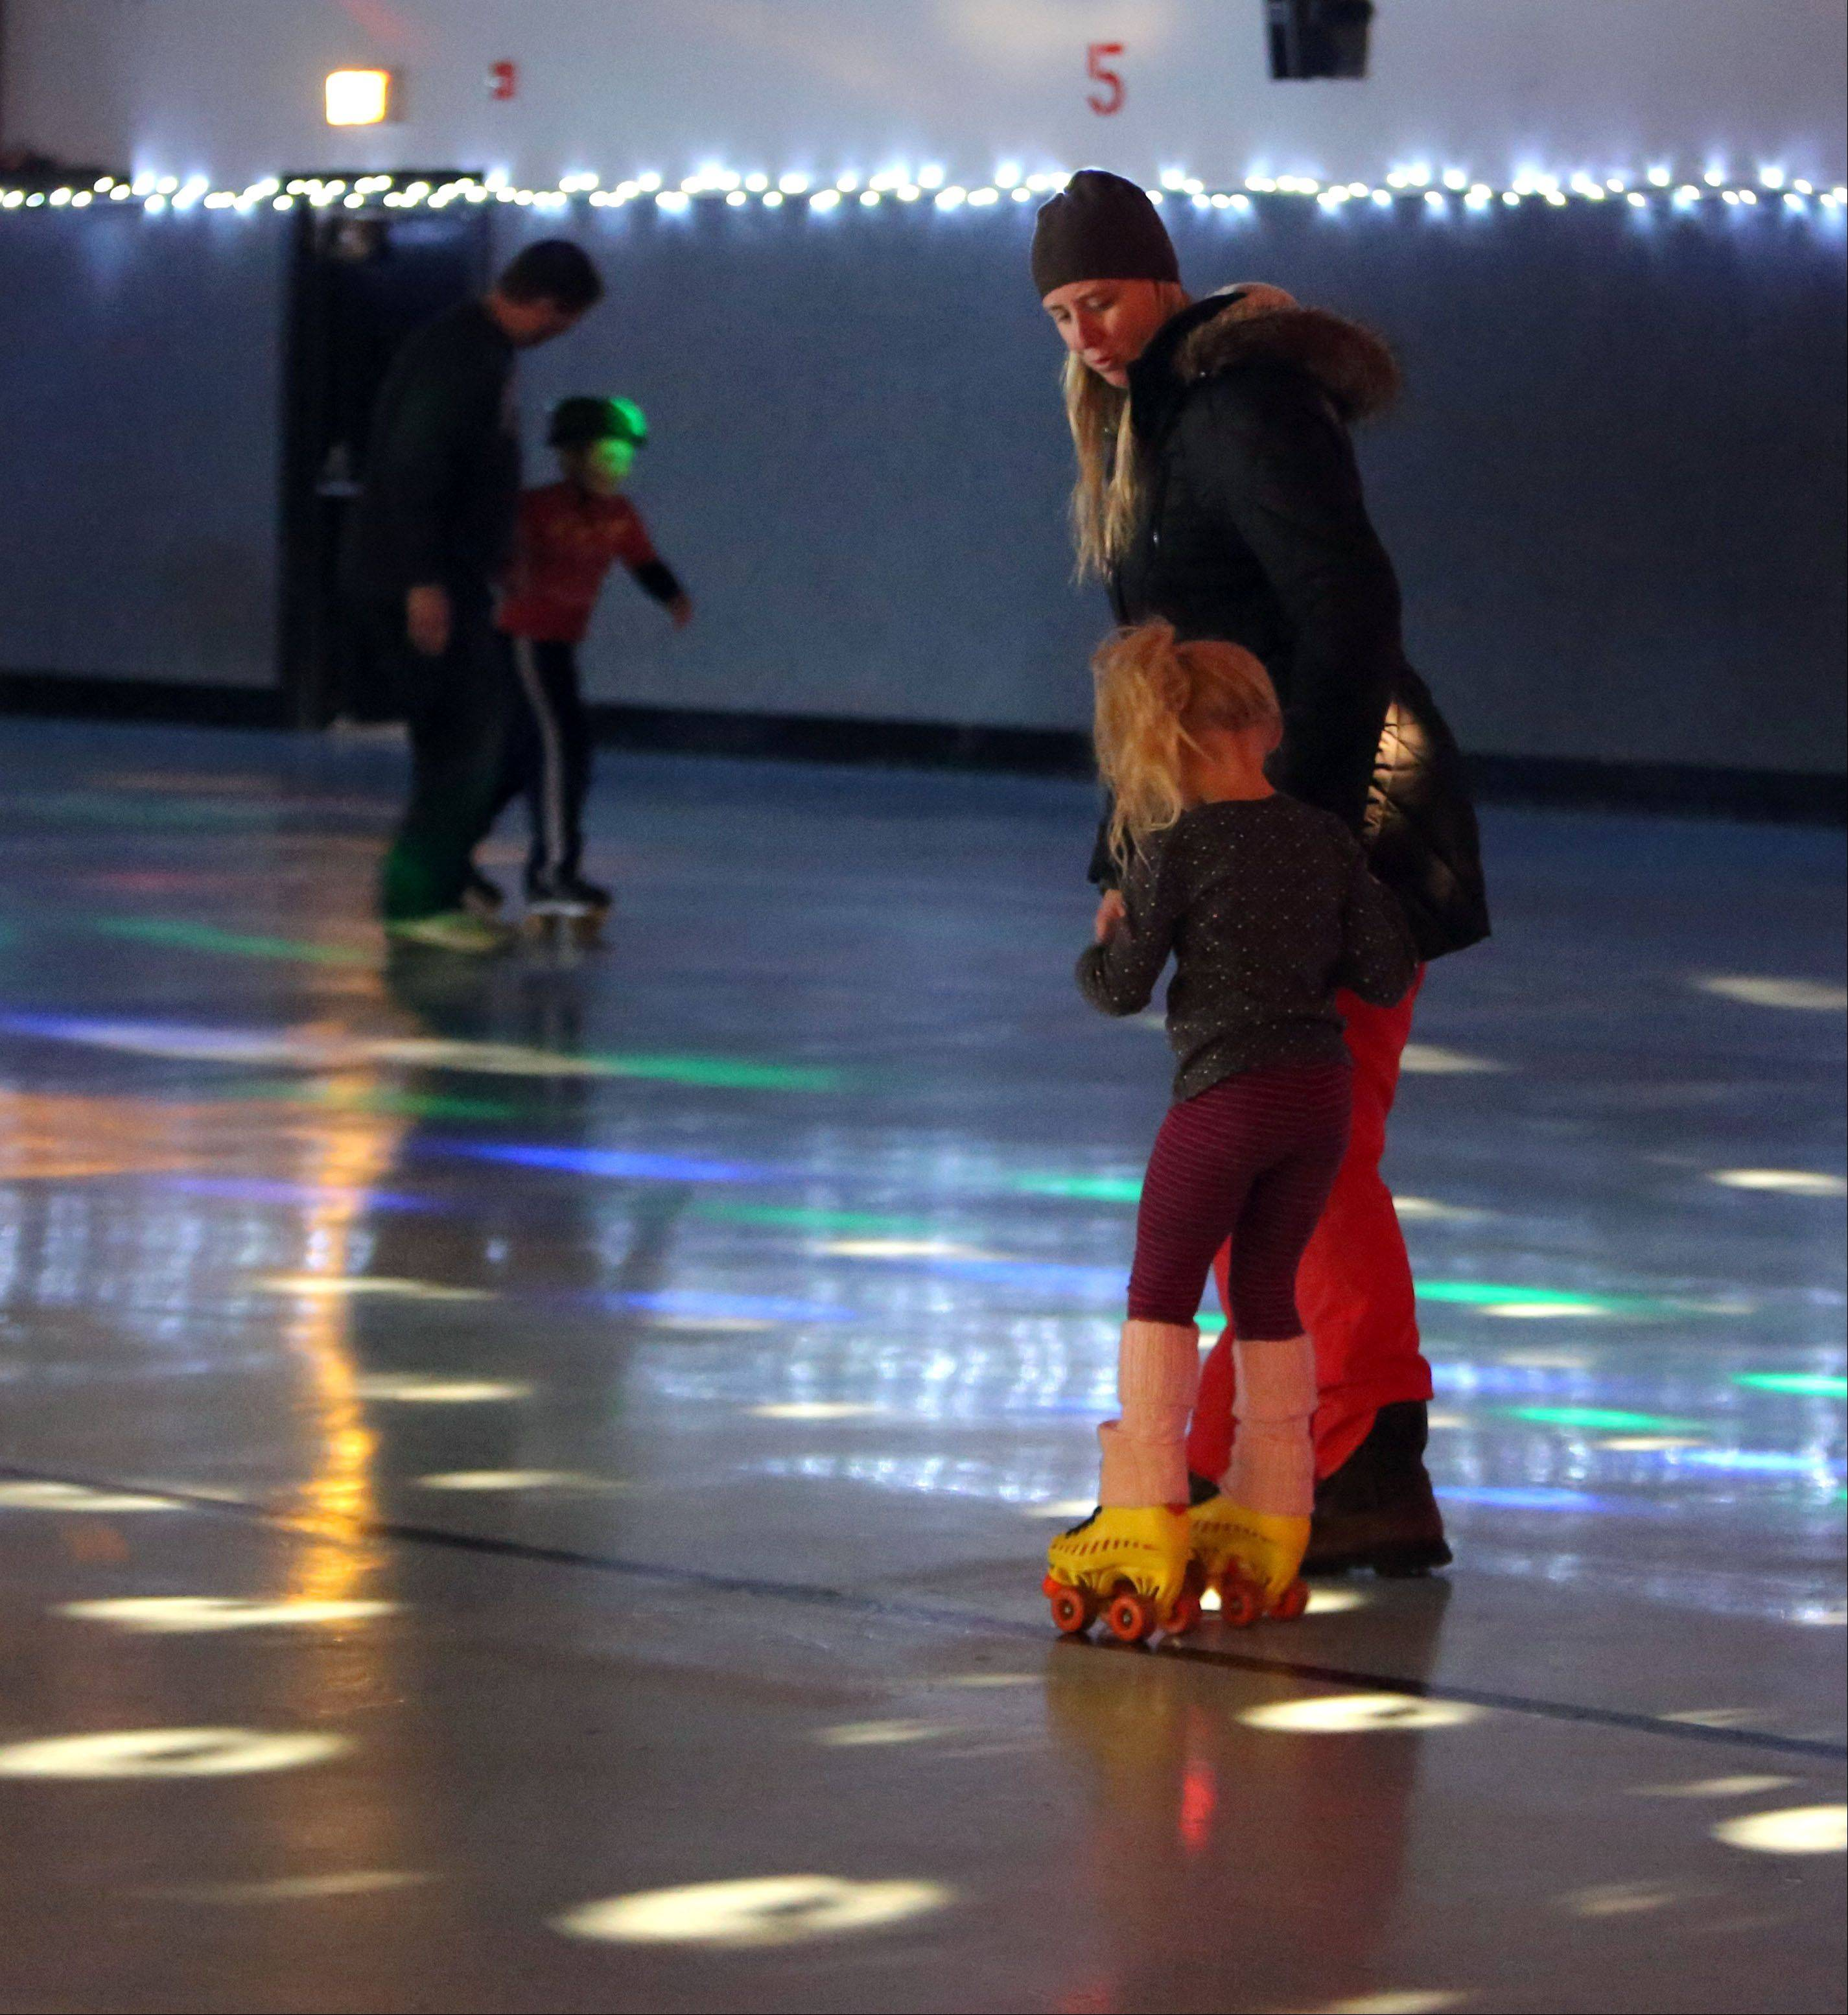 Jen Kallieris and her 5-year-old daughter, Dorothy, roller skate Monday inside Just for Fun Roller Rink in Mundelein.